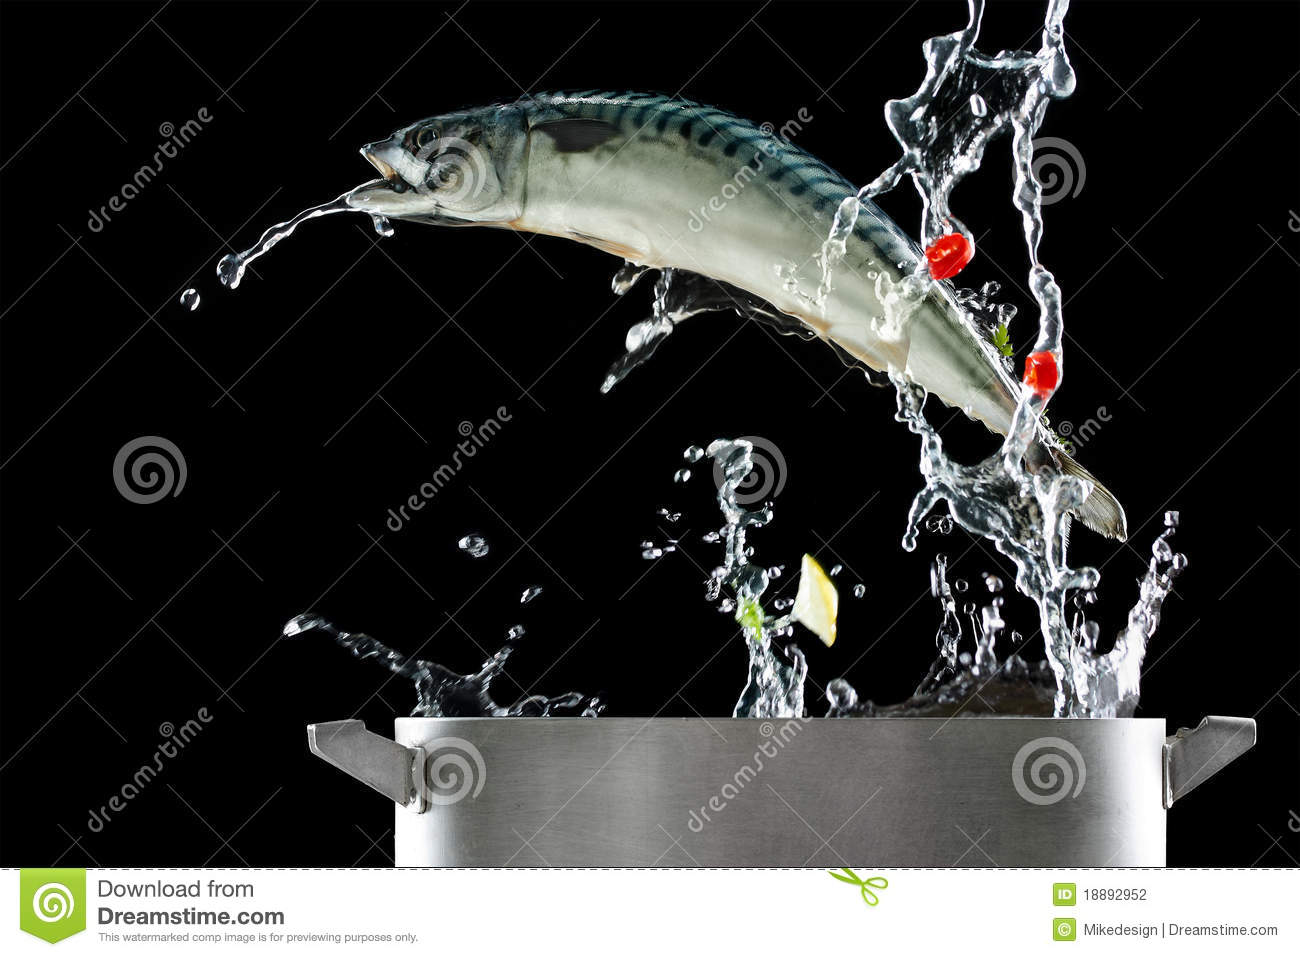 Fish jumping out of pat